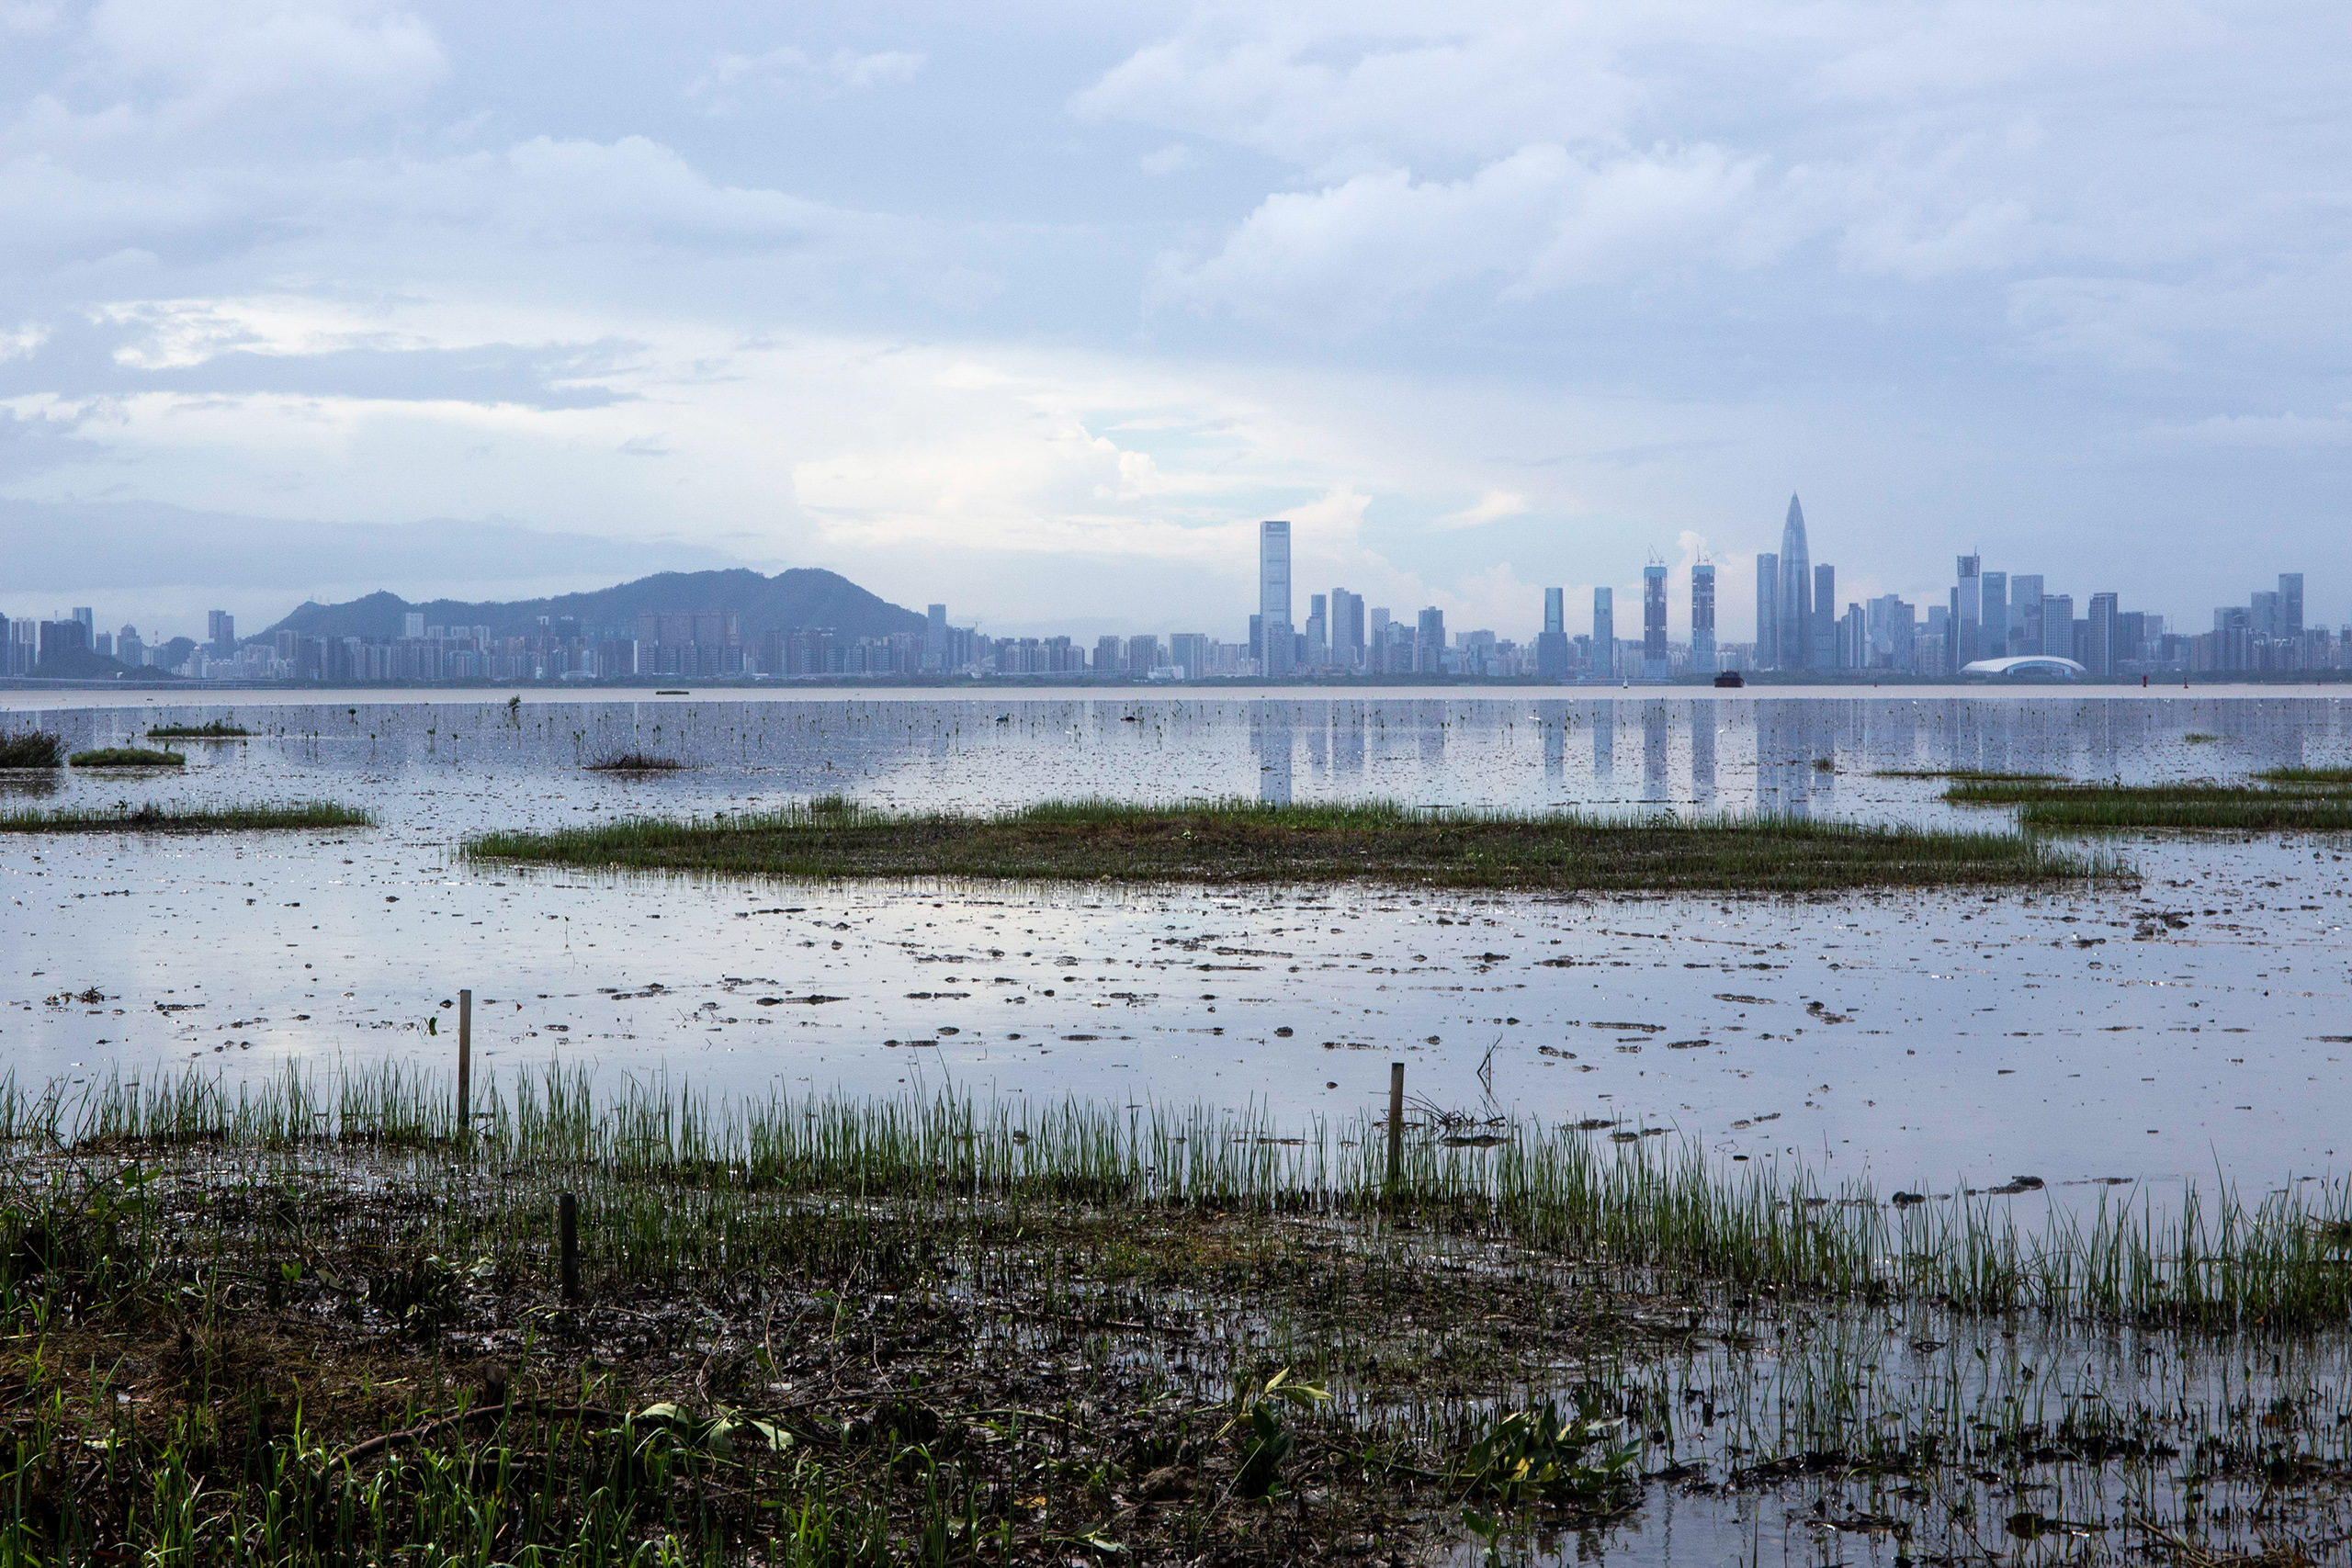 Across the Mai Po mudflats, the high-rise buildings of Shenzhen are a hard-to-miss reminder of urban spread along this coastline. A less visible threat to the Mai Po mangroves are invasive species. The fast-growing Mangrove Apple (Sonneratia caseolaris) is a non-local species that was originally planted in the Futian Nature Reserve on the Shenzhen side of Deep Bay as a quick way to restore the mangrove forests there. The species has since invaded the Mai Po reserve, where regular clearance efforts are needed to prevent it overtaking native mangroves. To address the issue, Futian and Mai Po have also formed a collaboration, holding regular workshops and exchanging data. (Image: Katherine Cheng / China Dialogue)